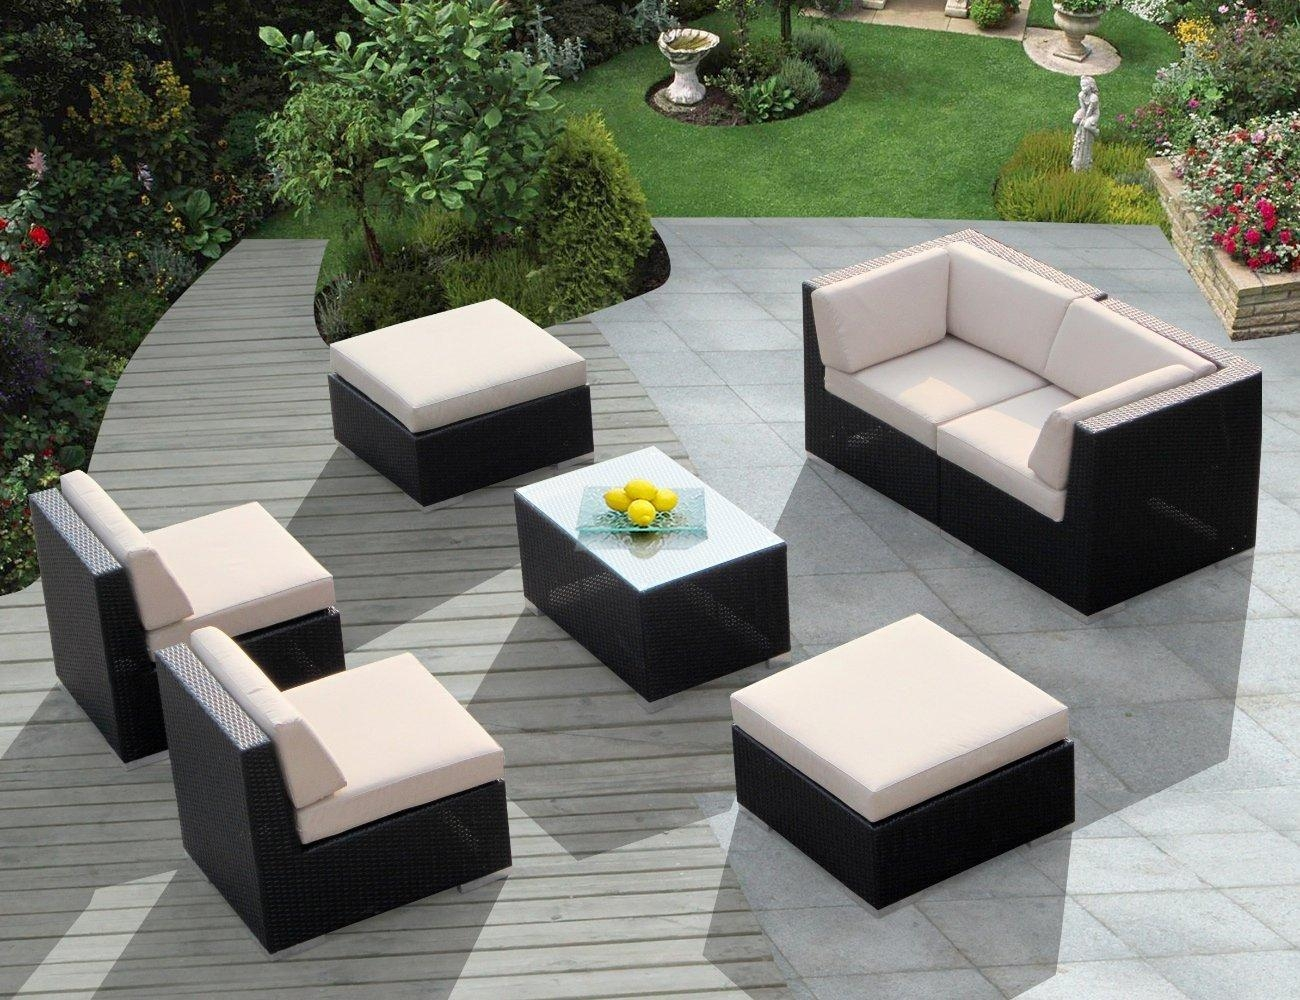 Genuine Ohana Outdoor Wicker Furniture Within Outdoor Sofas And Chairs (Image 8 of 20)